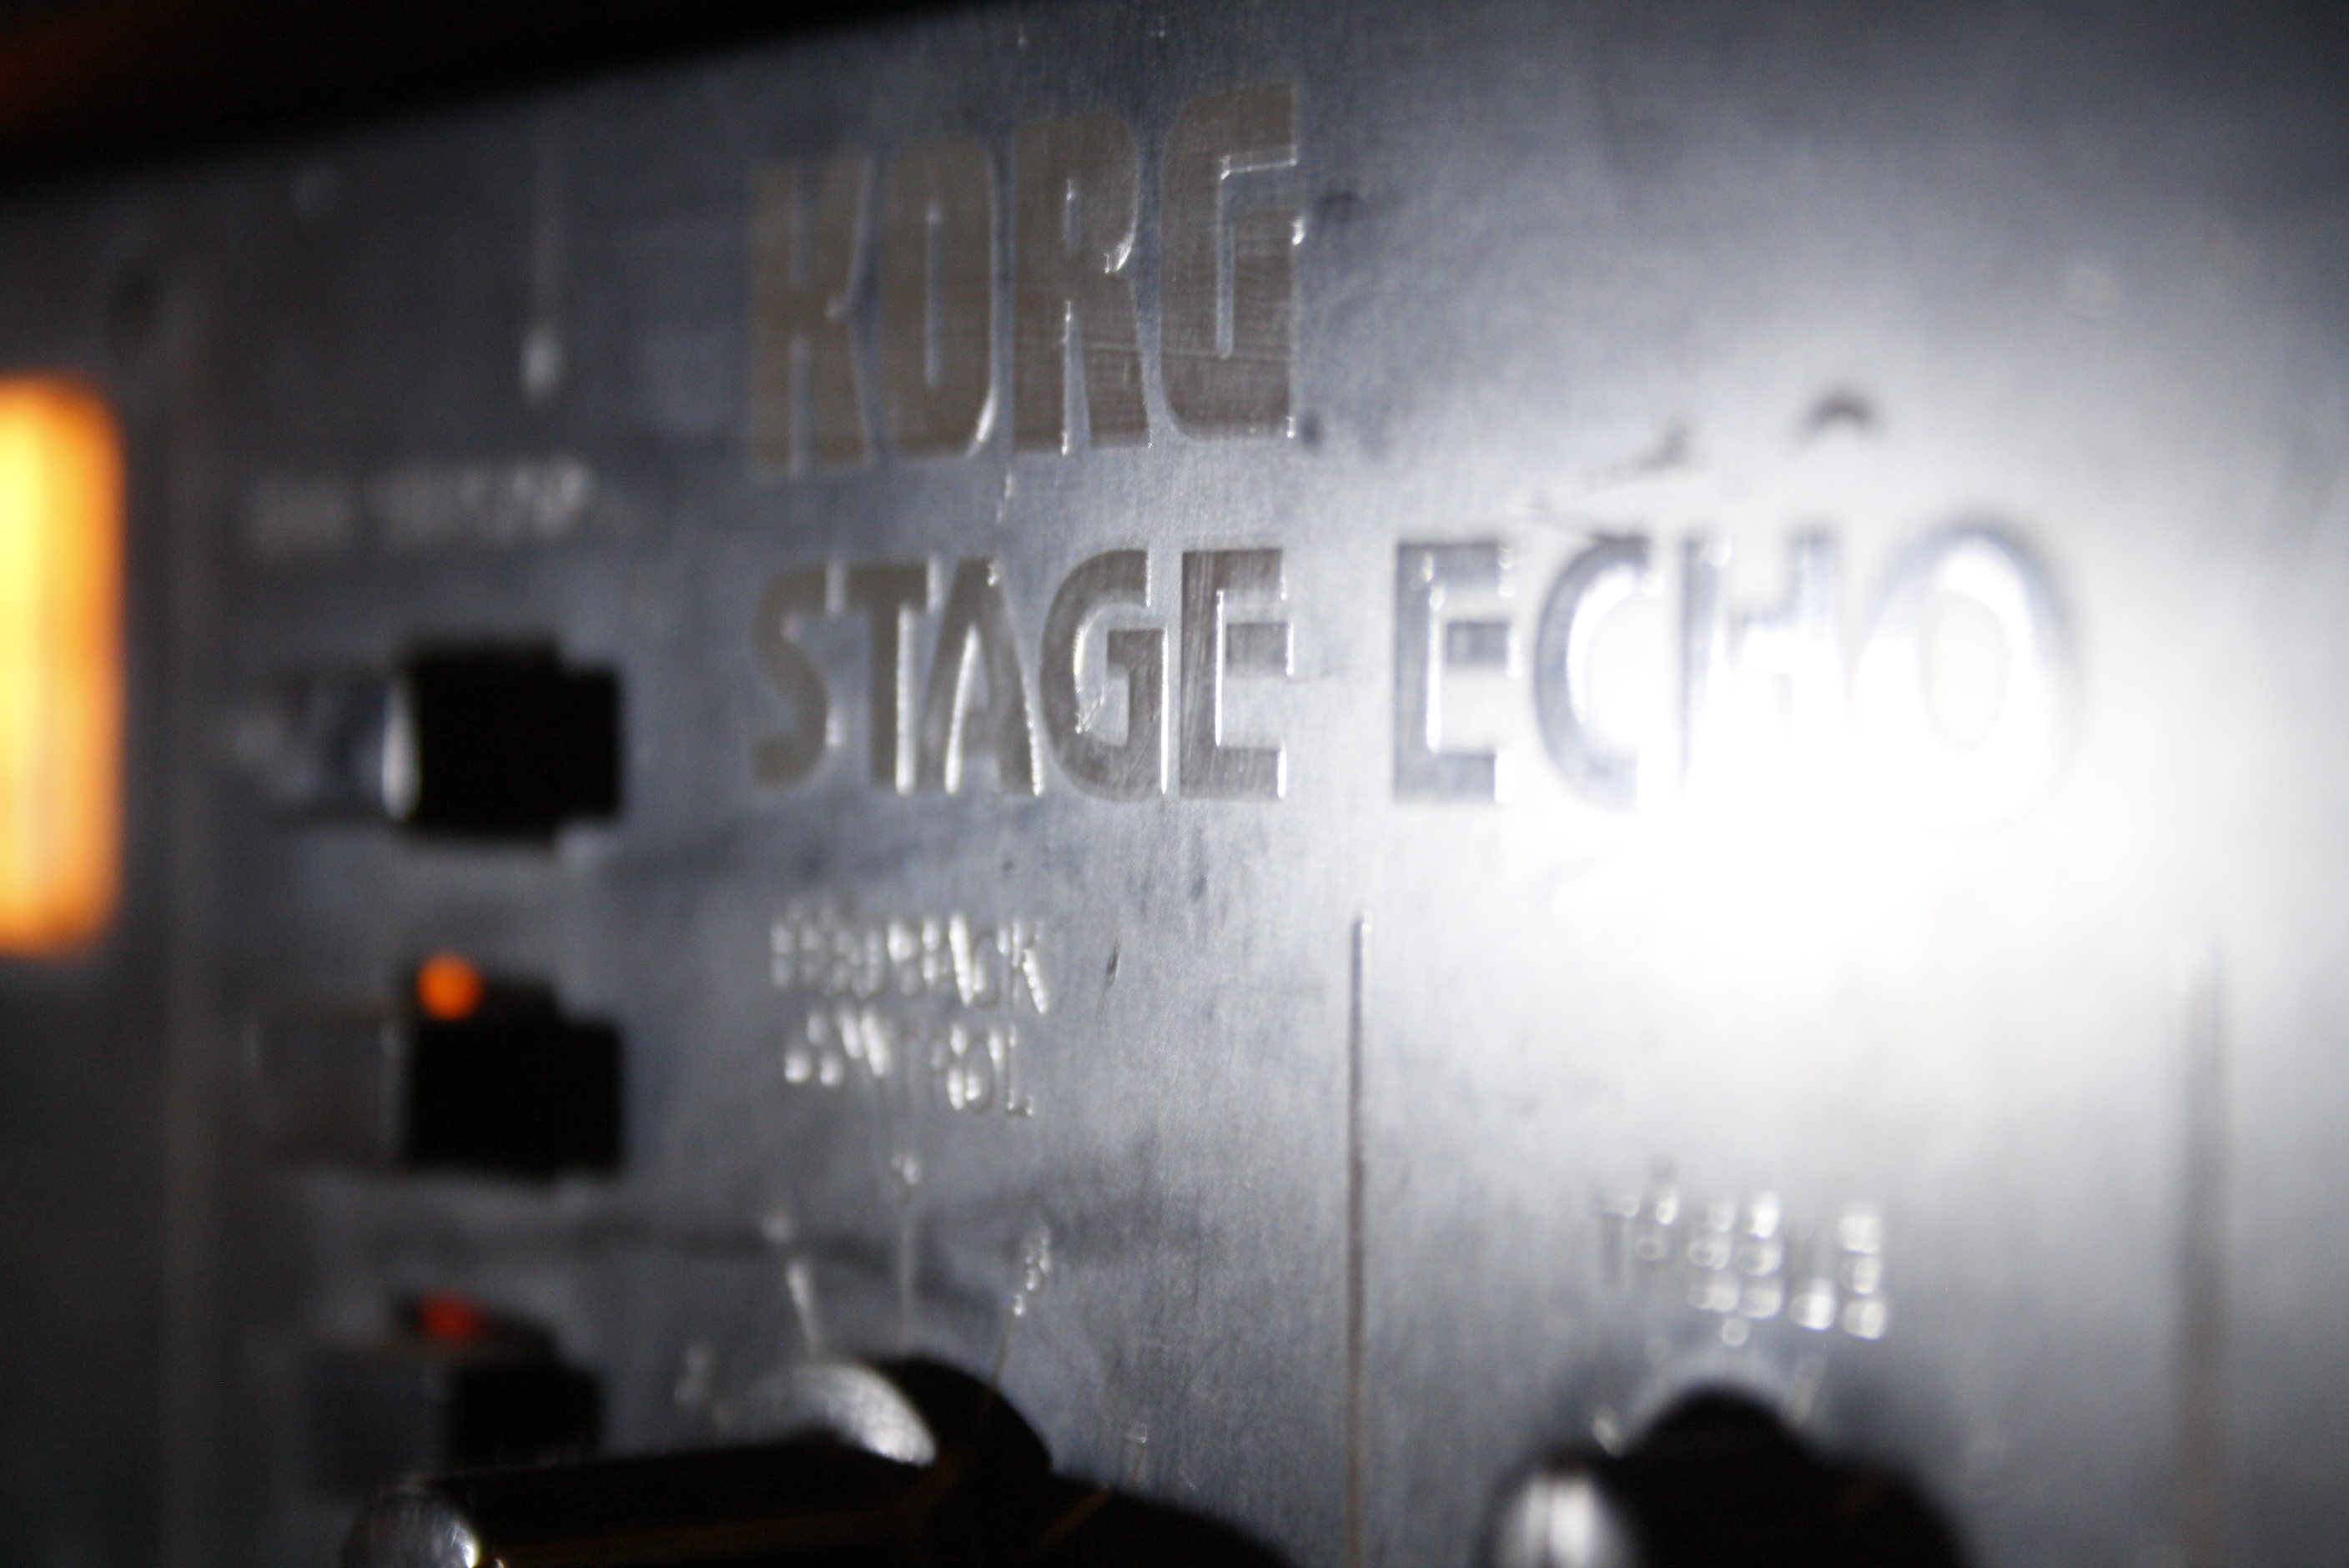 Stage Echo